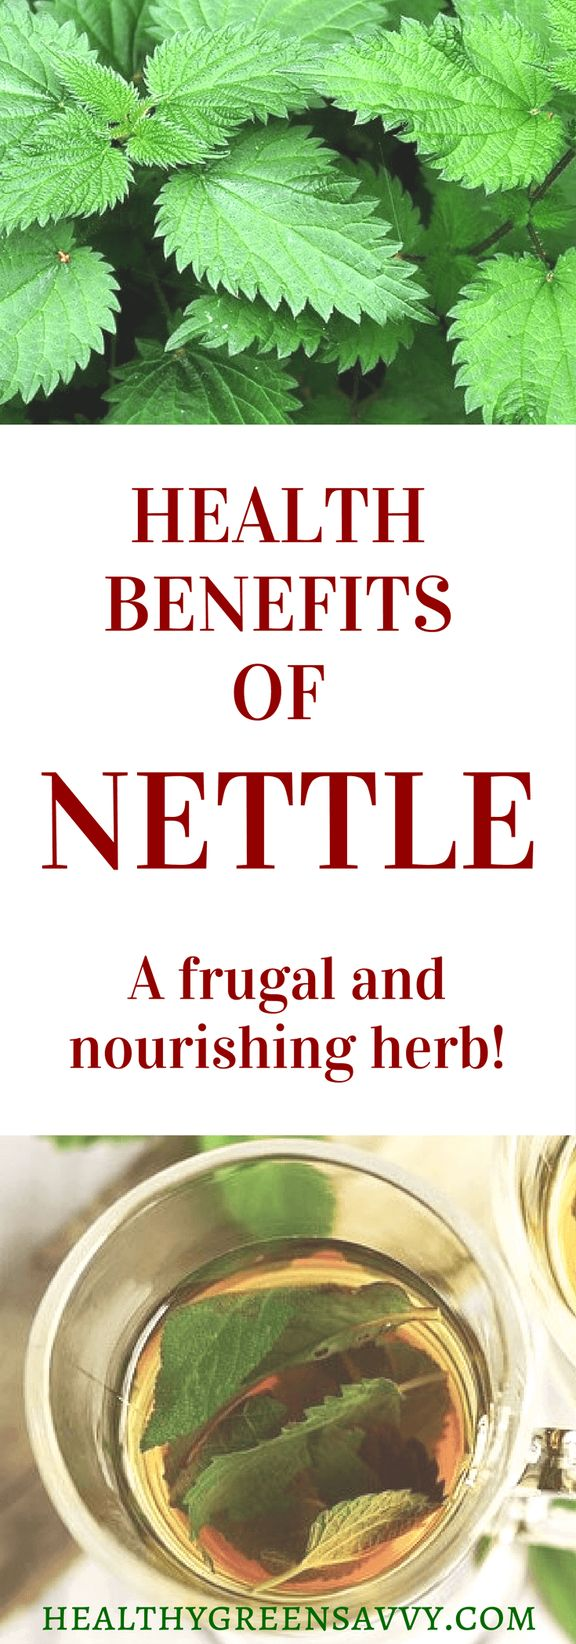 Nettle leaf tea offers some impressive health benefits! Click to find out more or pin to save for later. | nettle recipes | nettle leaf tea | nettle health benefits